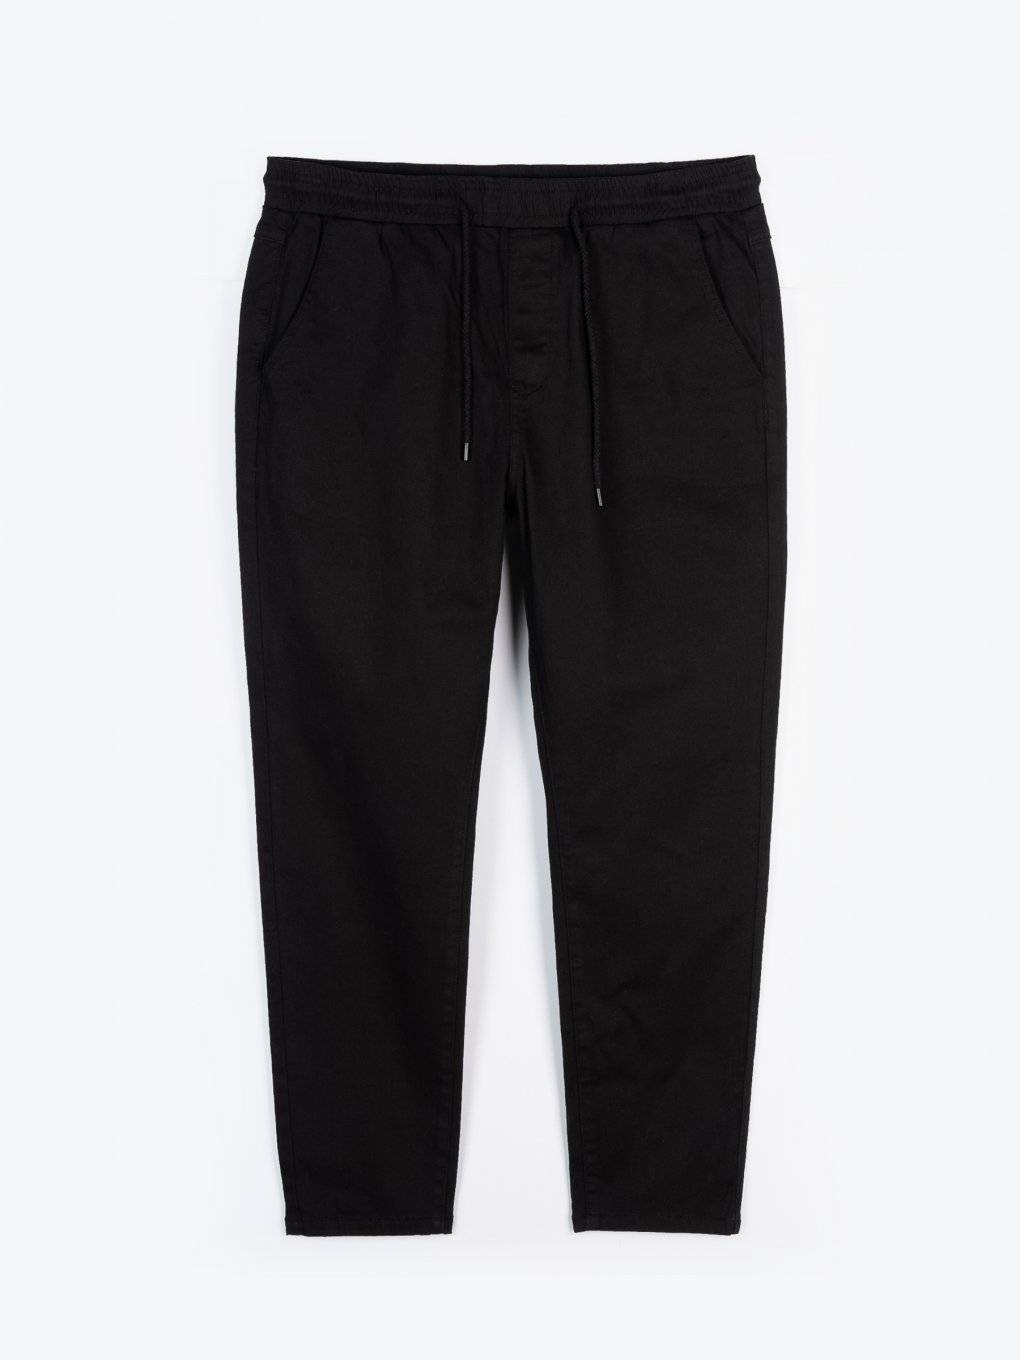 Cropped plain stretch trousers